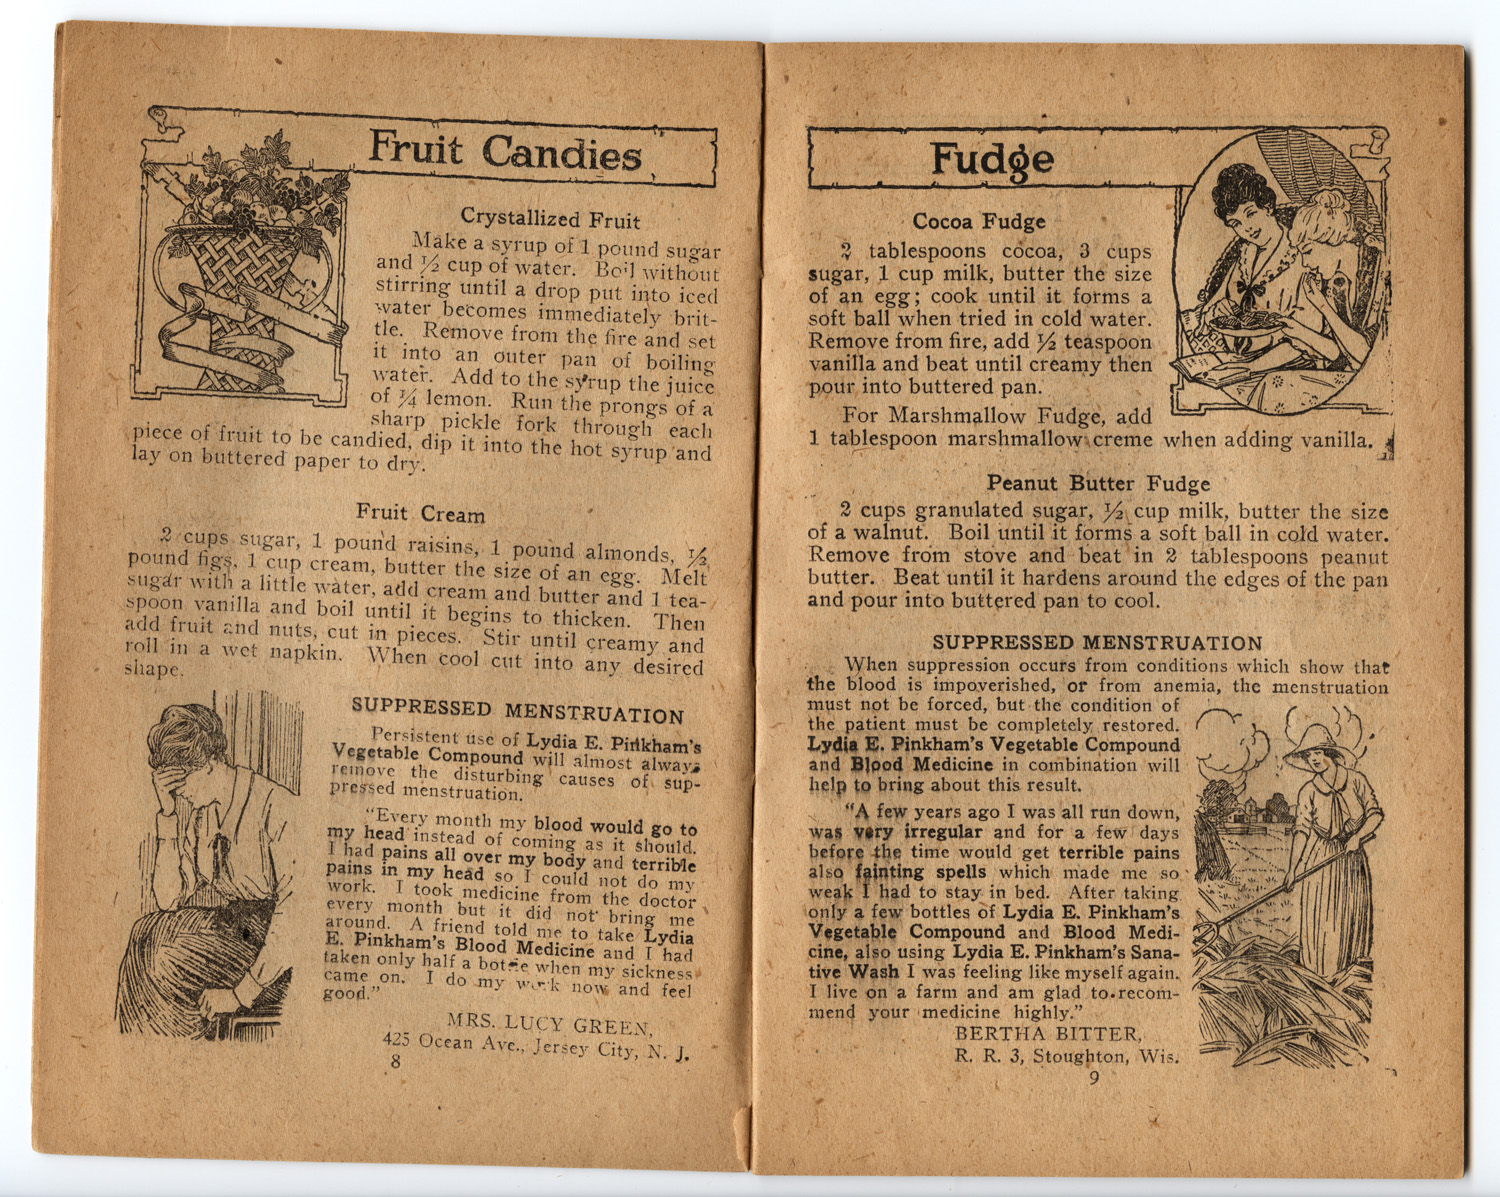 Pages 8 and 9 of 'Sweets' pamphlet, featuring recipes for Crystallized Fruit, Fruit Cream, Cocoa Fude, Peanut Butter Fudge and testimonials regarding the use of Lydia E. Pinkham's Vegetable Compound and Blood Pills for treating suppressed menstuation.